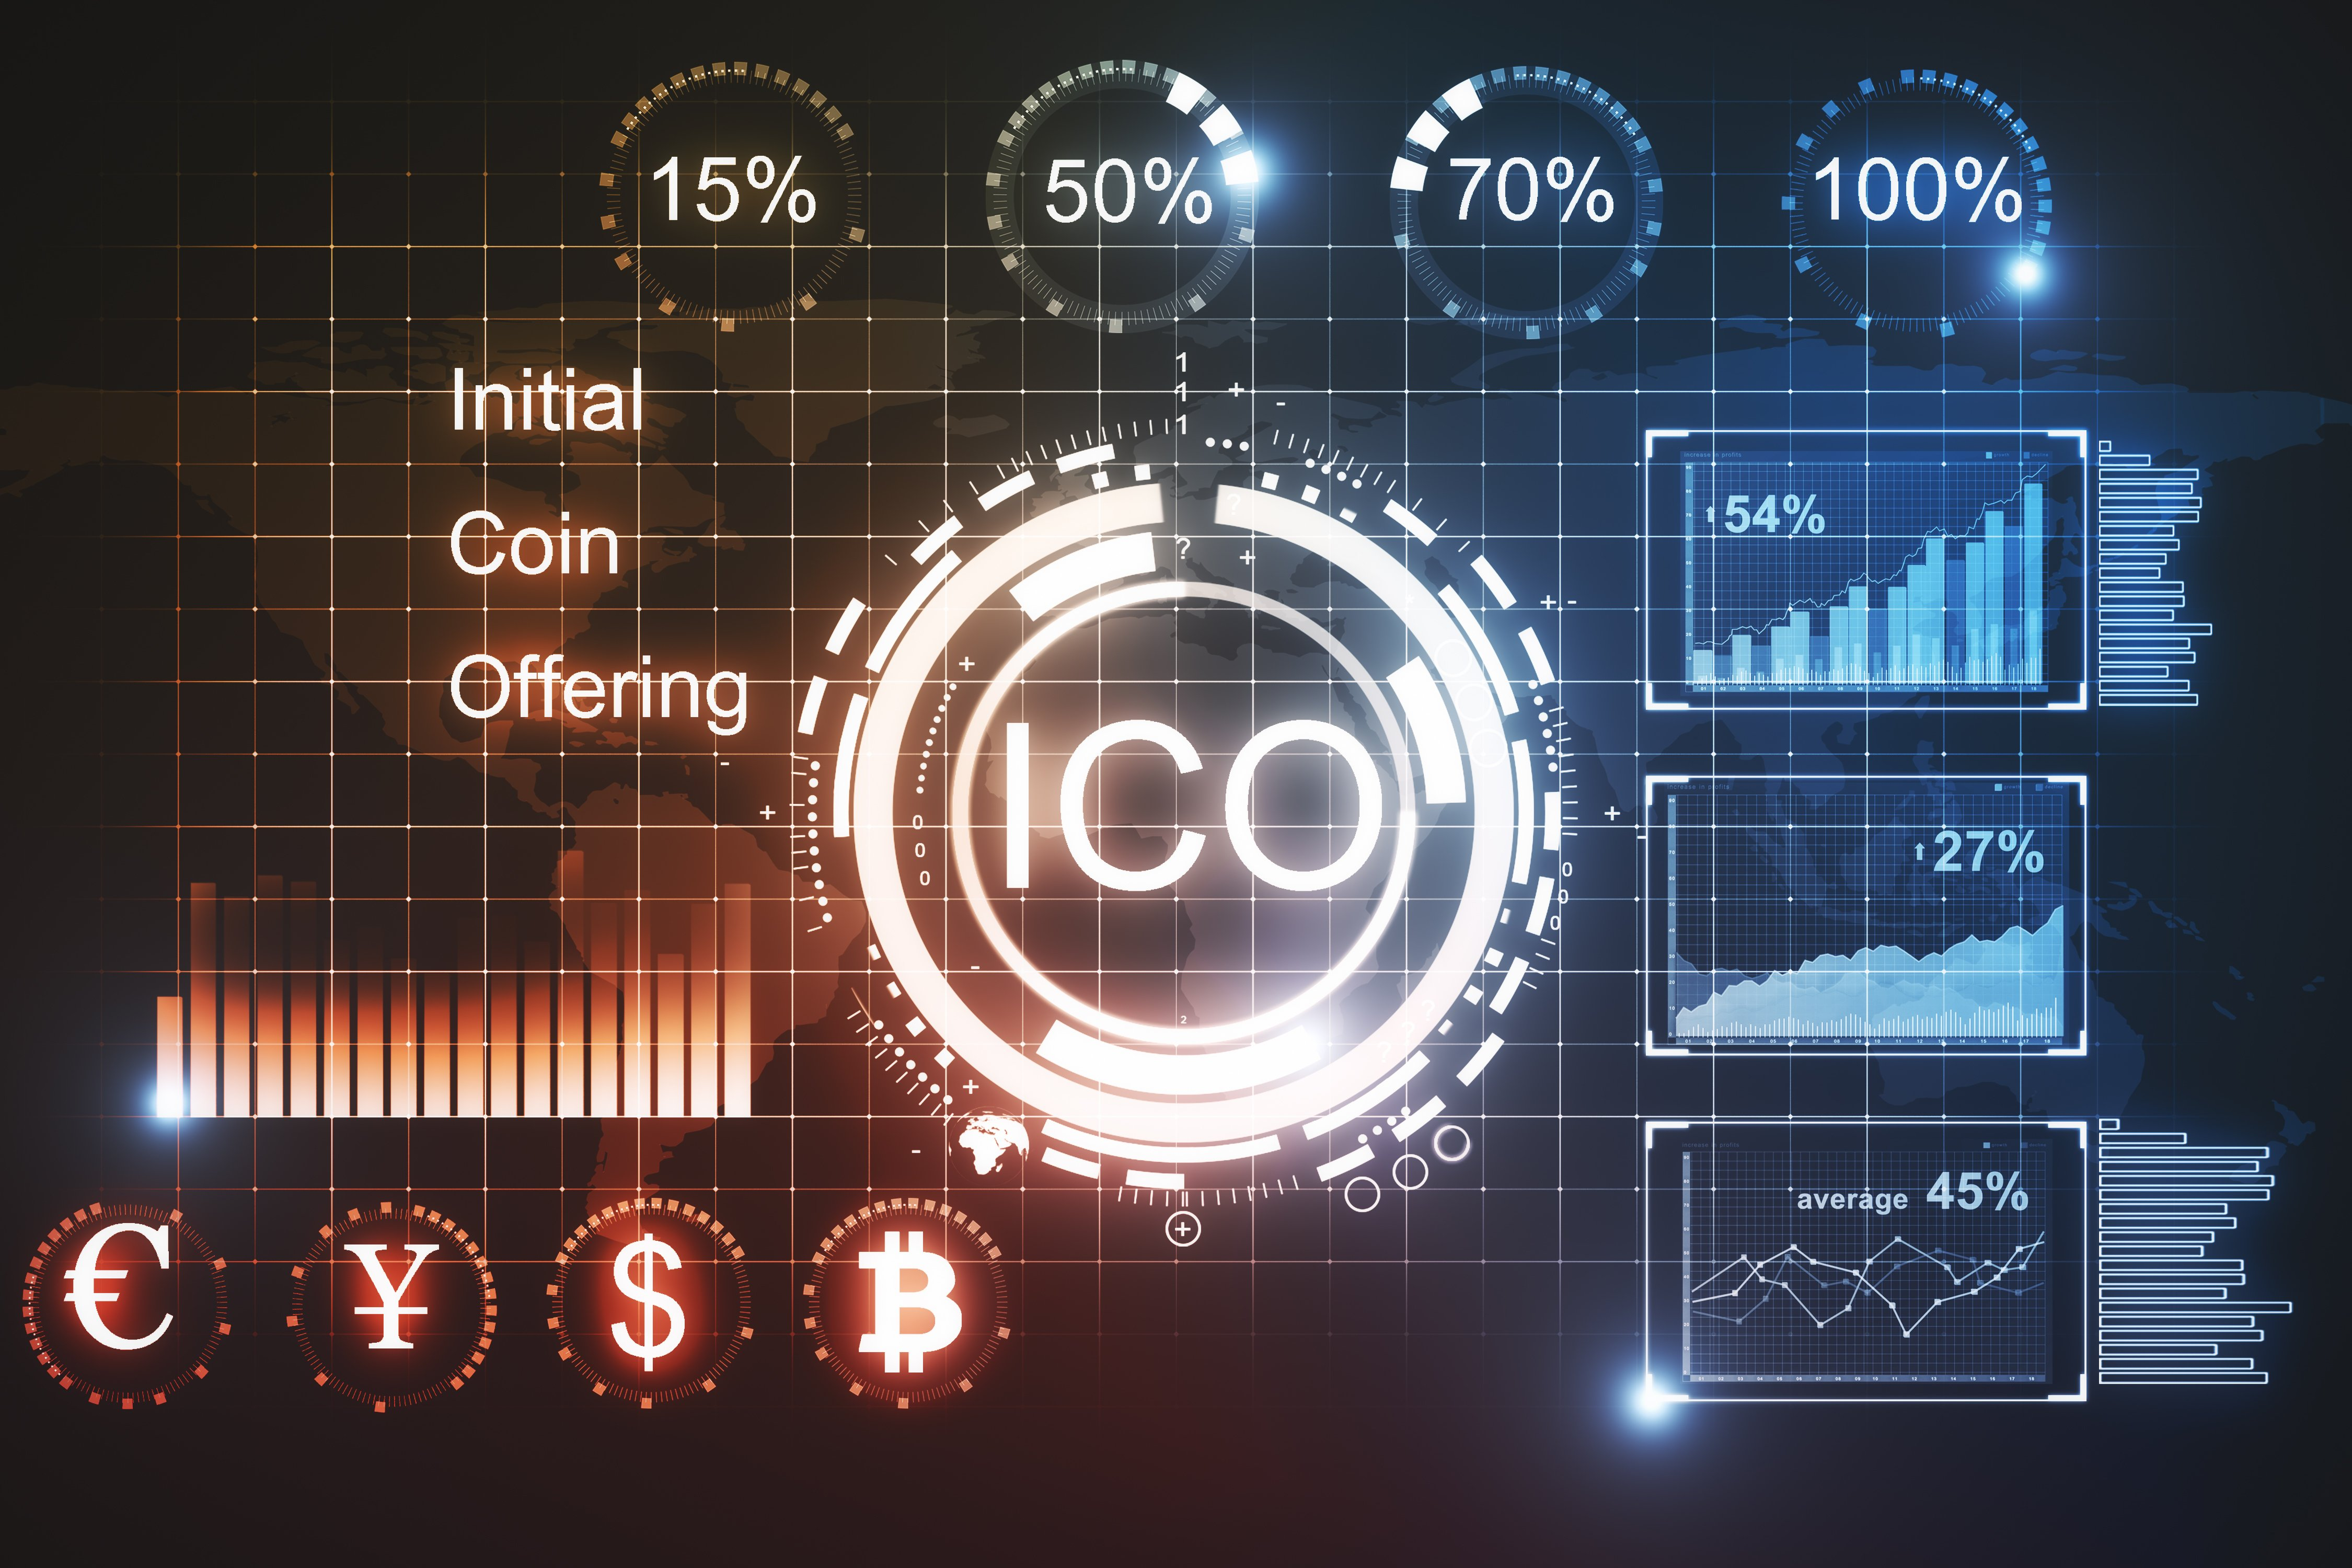 What is icp cryptocurrency